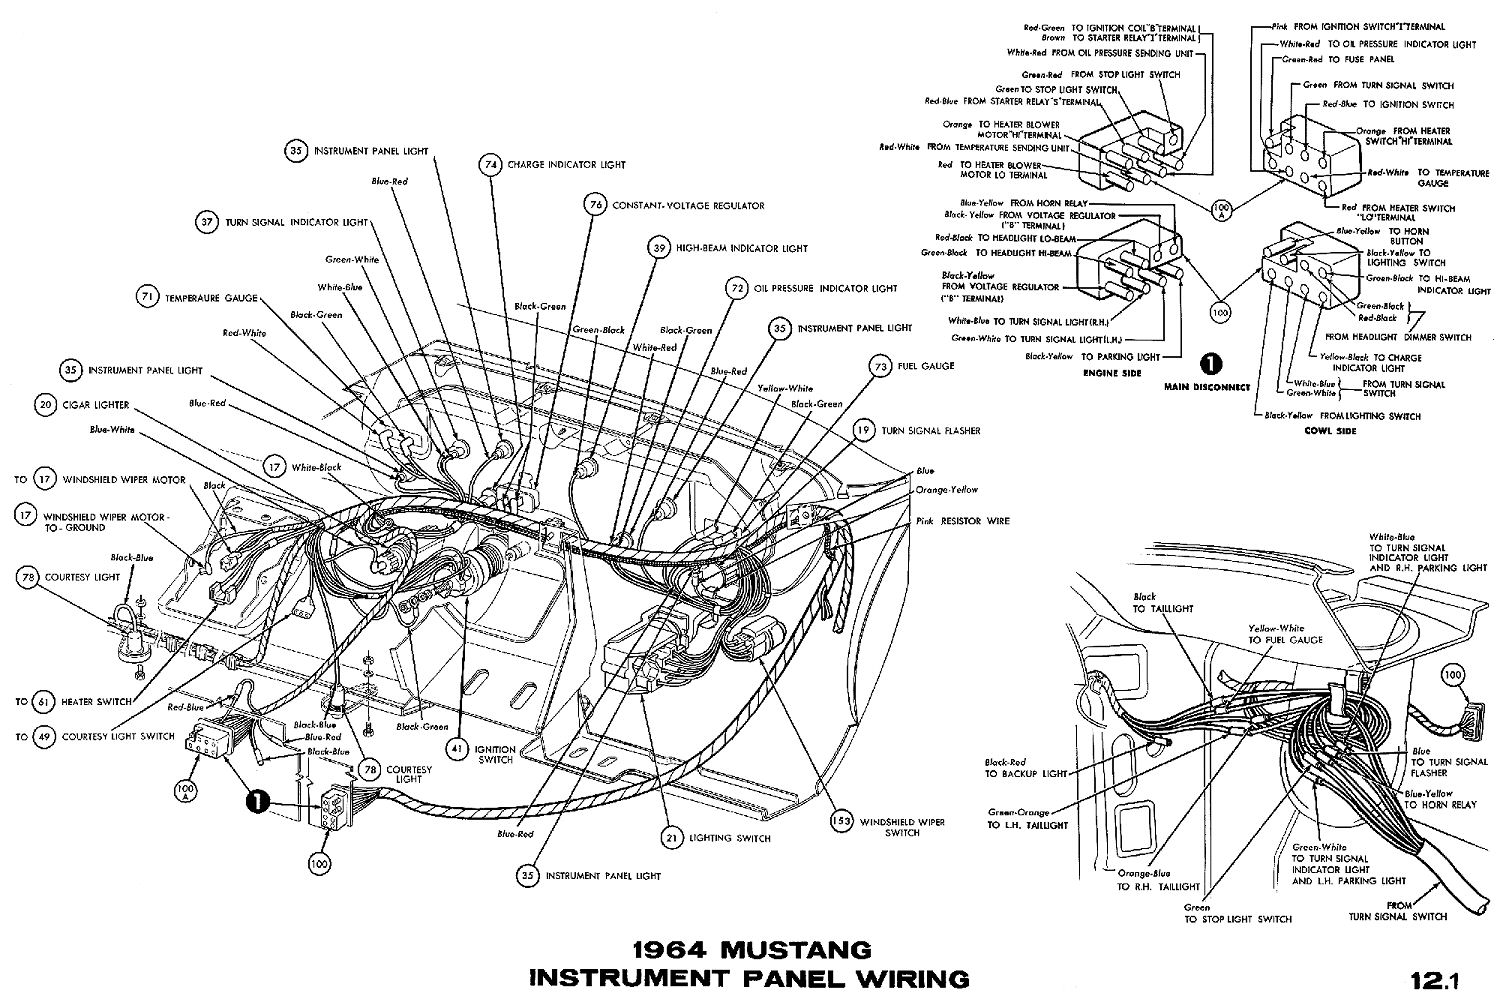 1964b 1968 mustang wiring diagram manual 68 mustang ignition wiring 1969 Mustang Wiring Diagram PDF at suagrazia.org